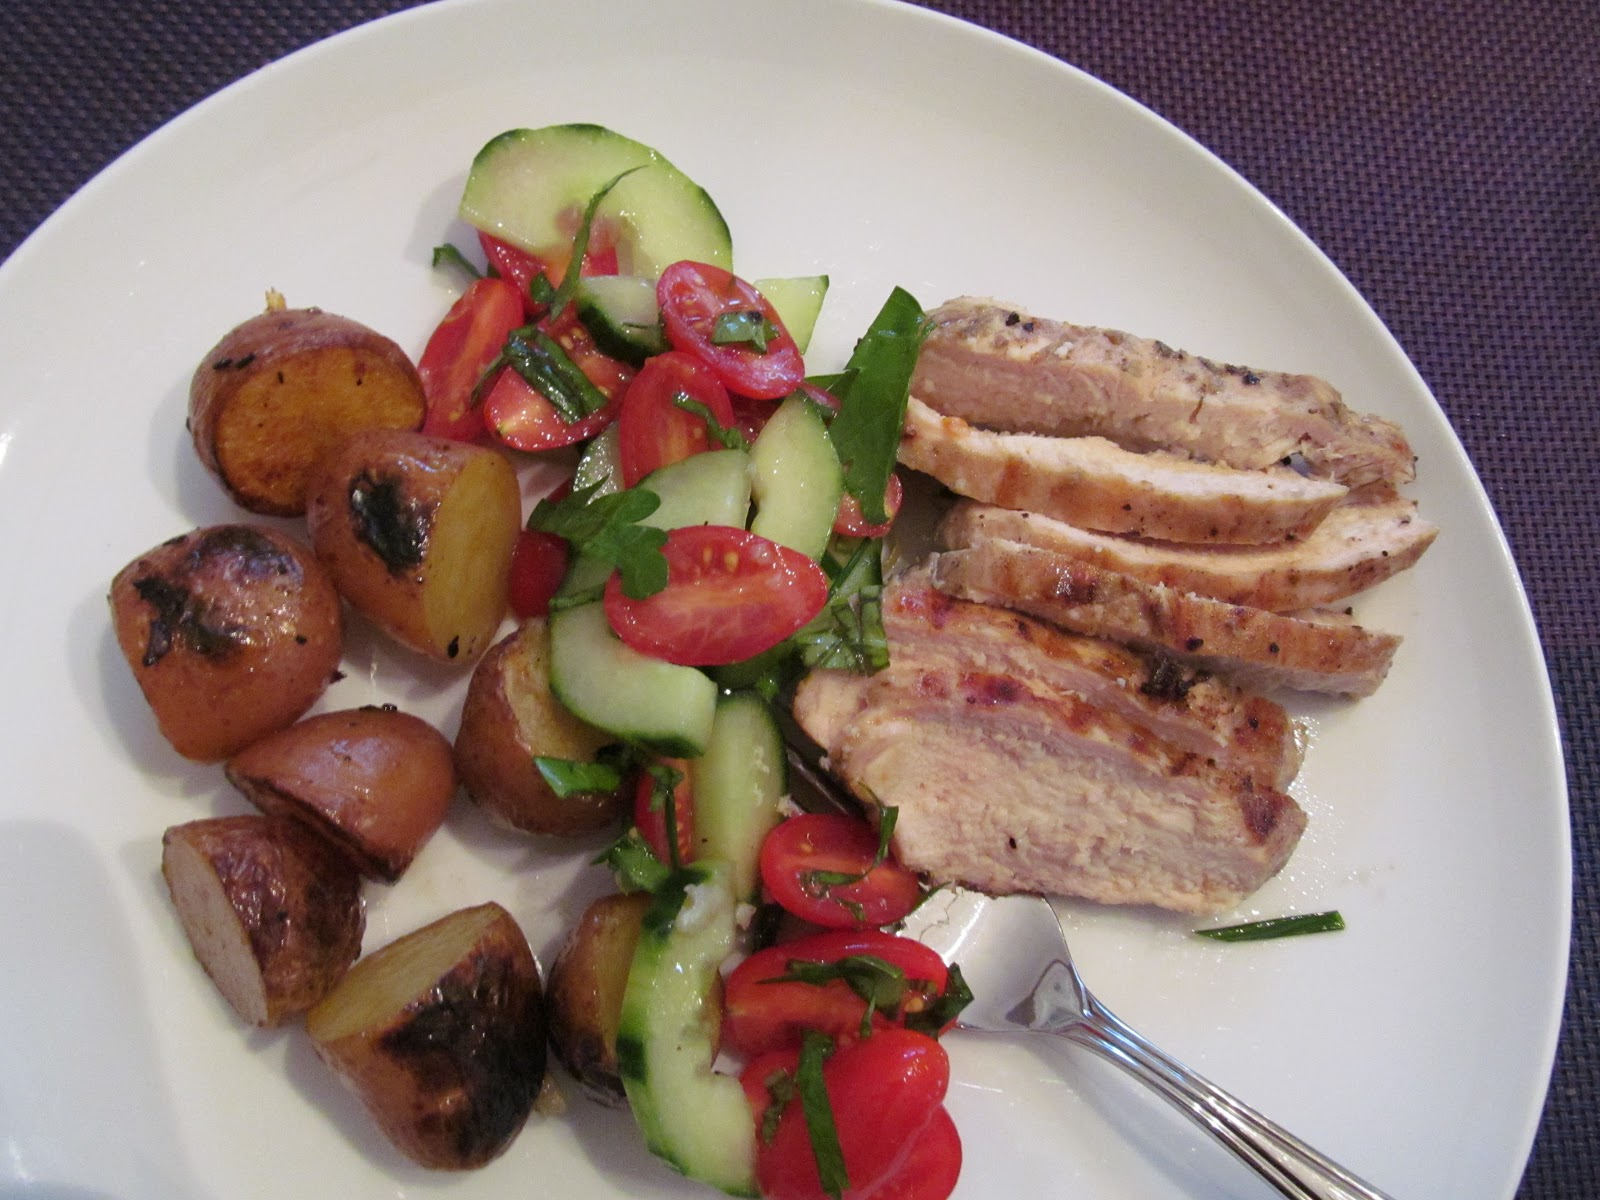 ... of dinner: Grilled Chicken and Potatoes with Tomato and Cucumber Salad